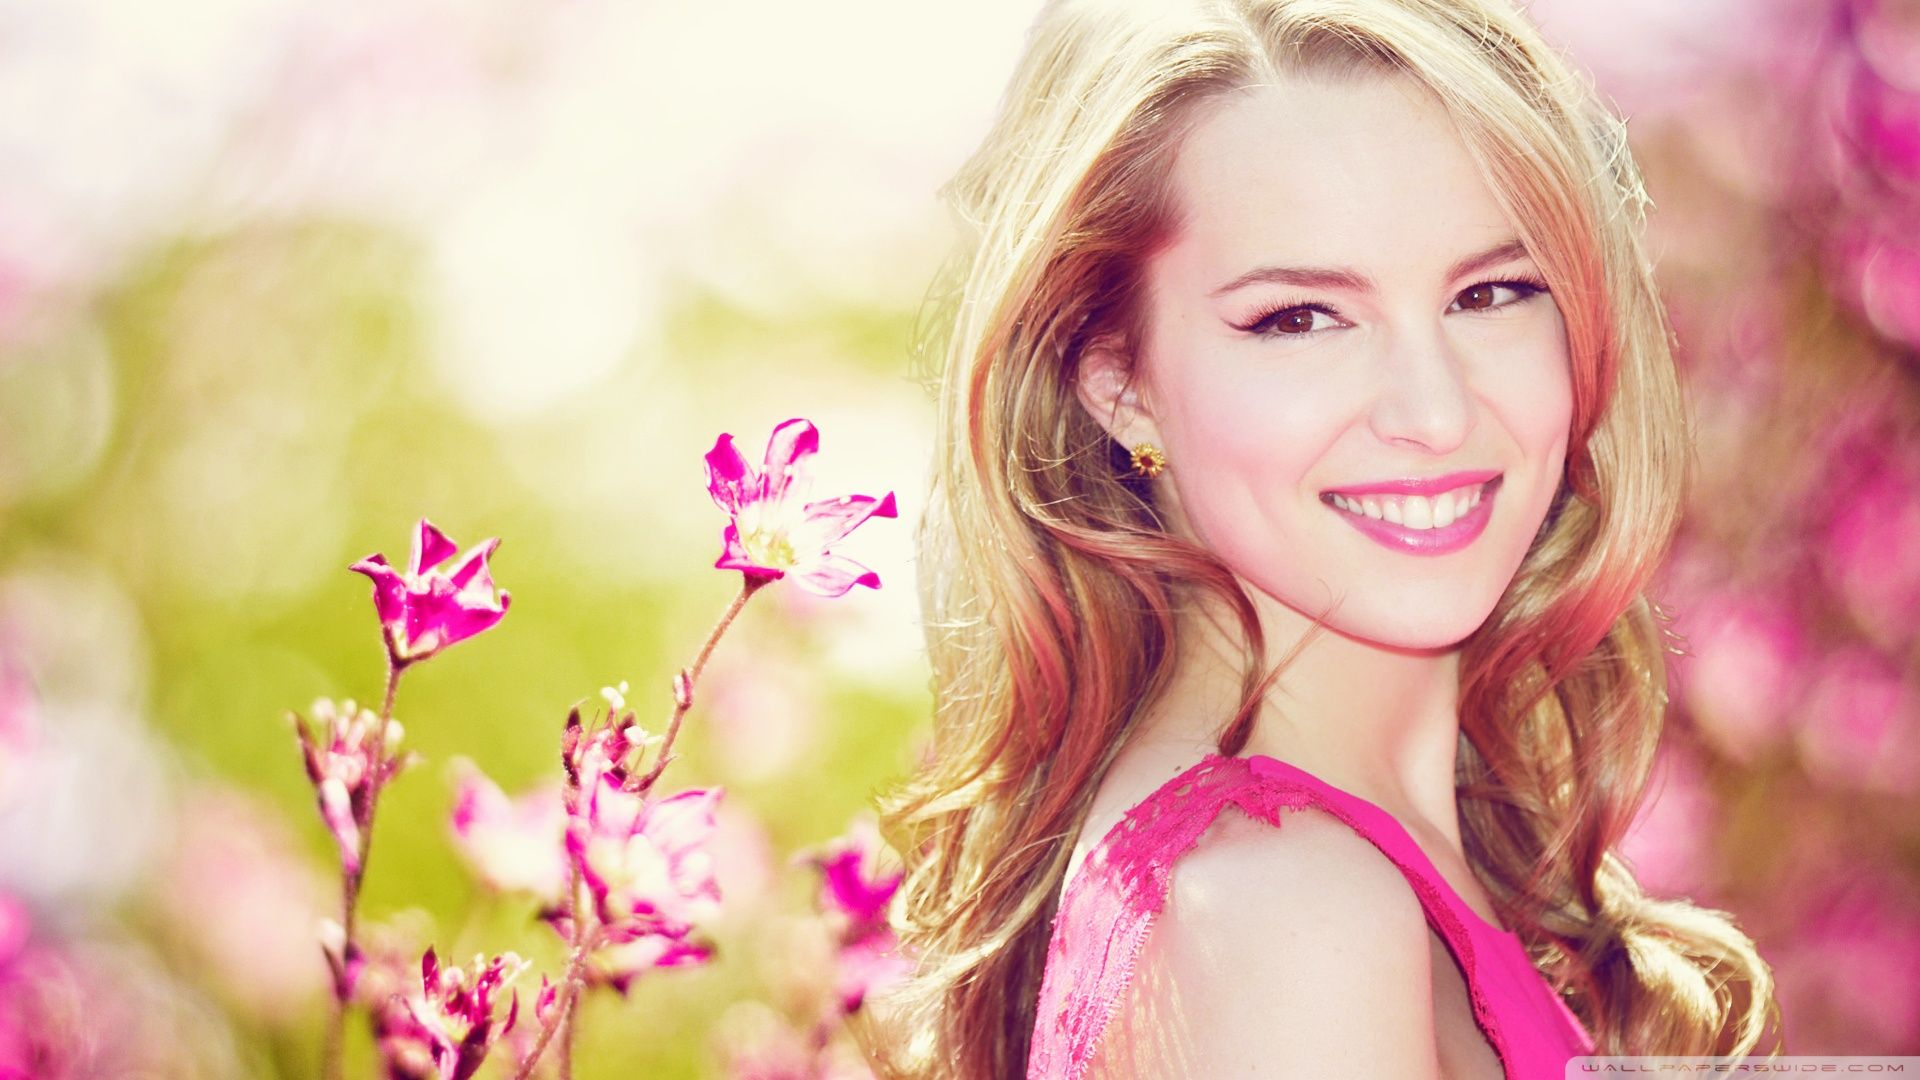 bridgit mendler temperamental love перевод